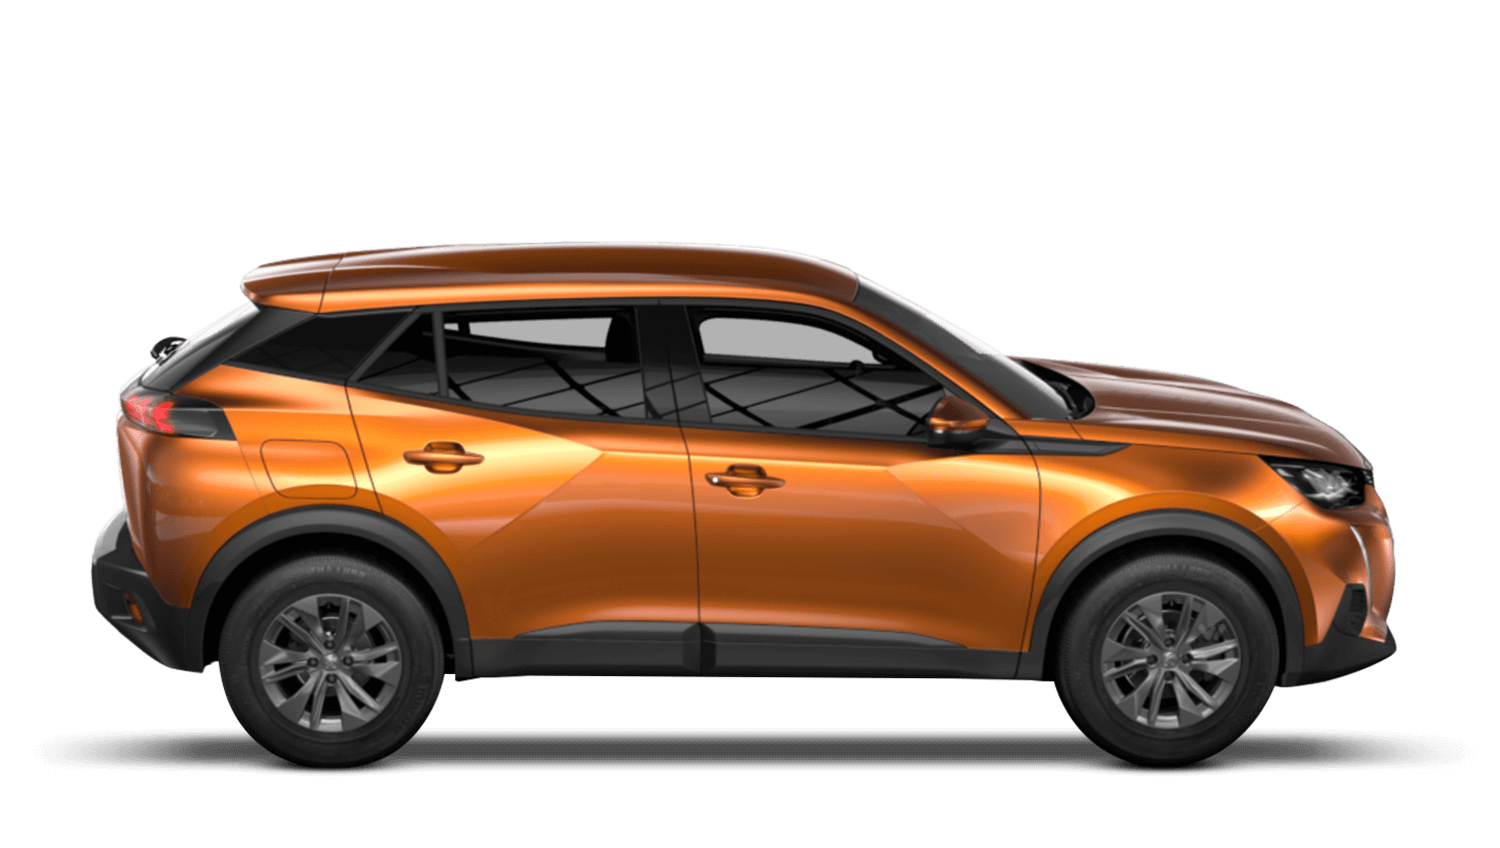 Orange Fusion All-new Peugeot 2008 SUV